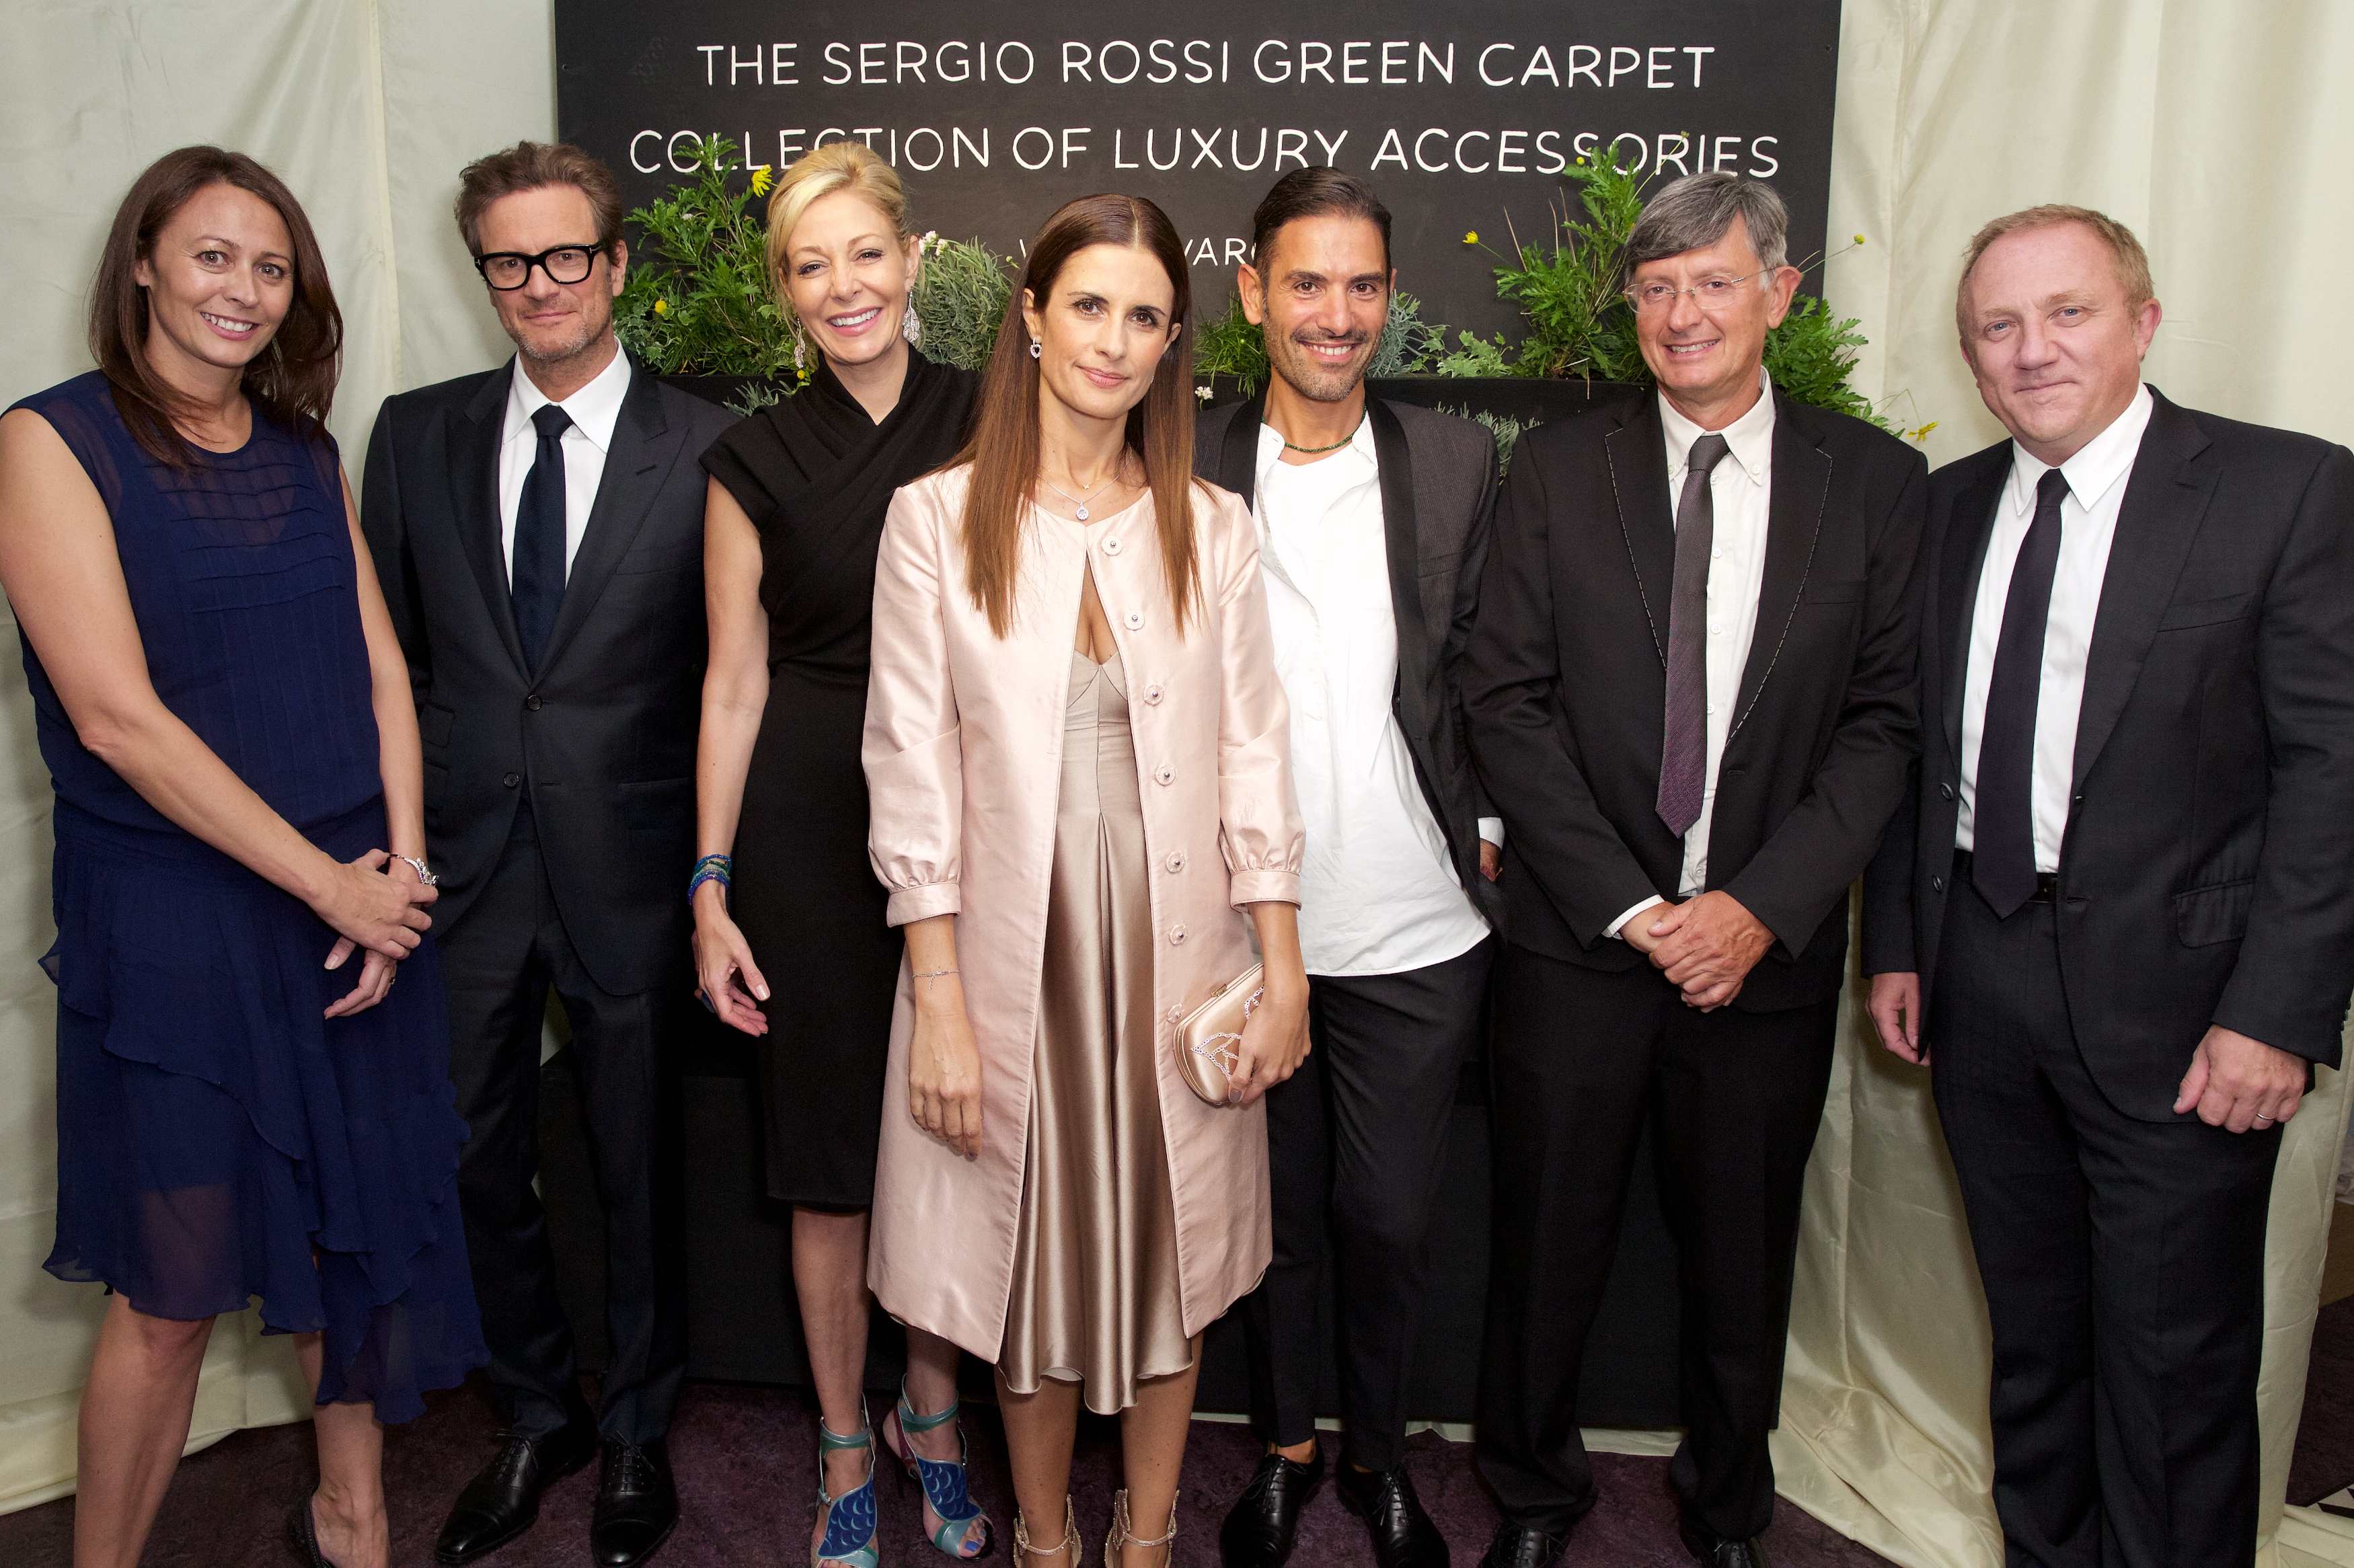 Sergio Rossi Eco-Age Green Carpet Collection of Luxury Accessories